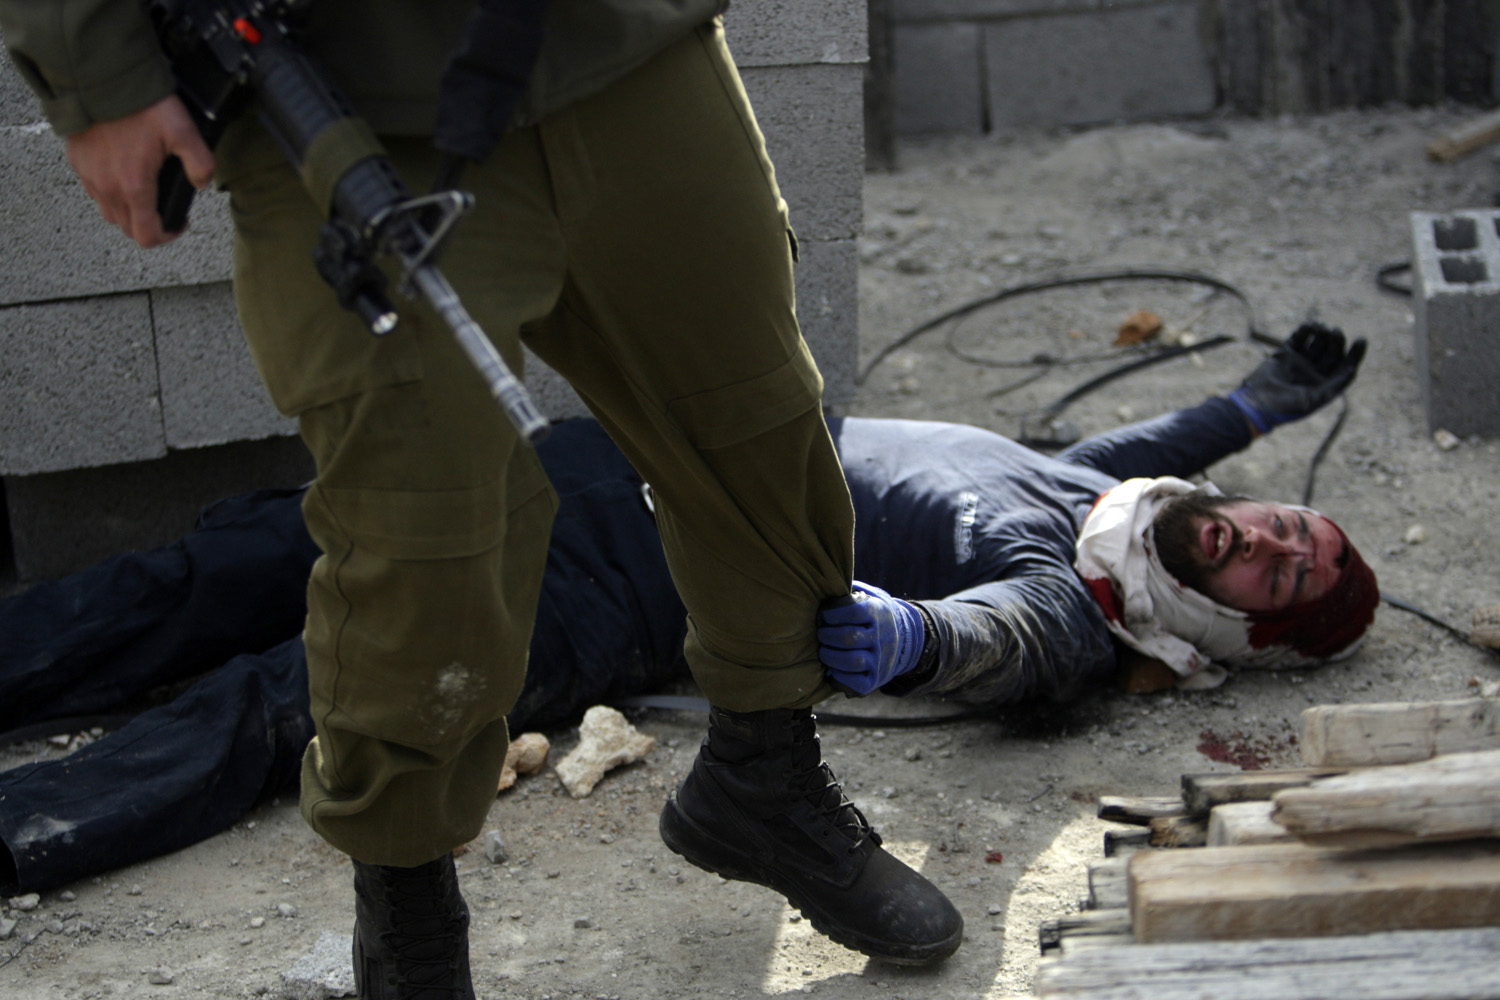 Jan. 7, 2014. An injured Israeli settler grabs an Israeli soldier's leg to get his attention after the settler was detained by Palestinian villagers in a building under construction near the West Bank village of Qusra, southeast of the city of Nablus.